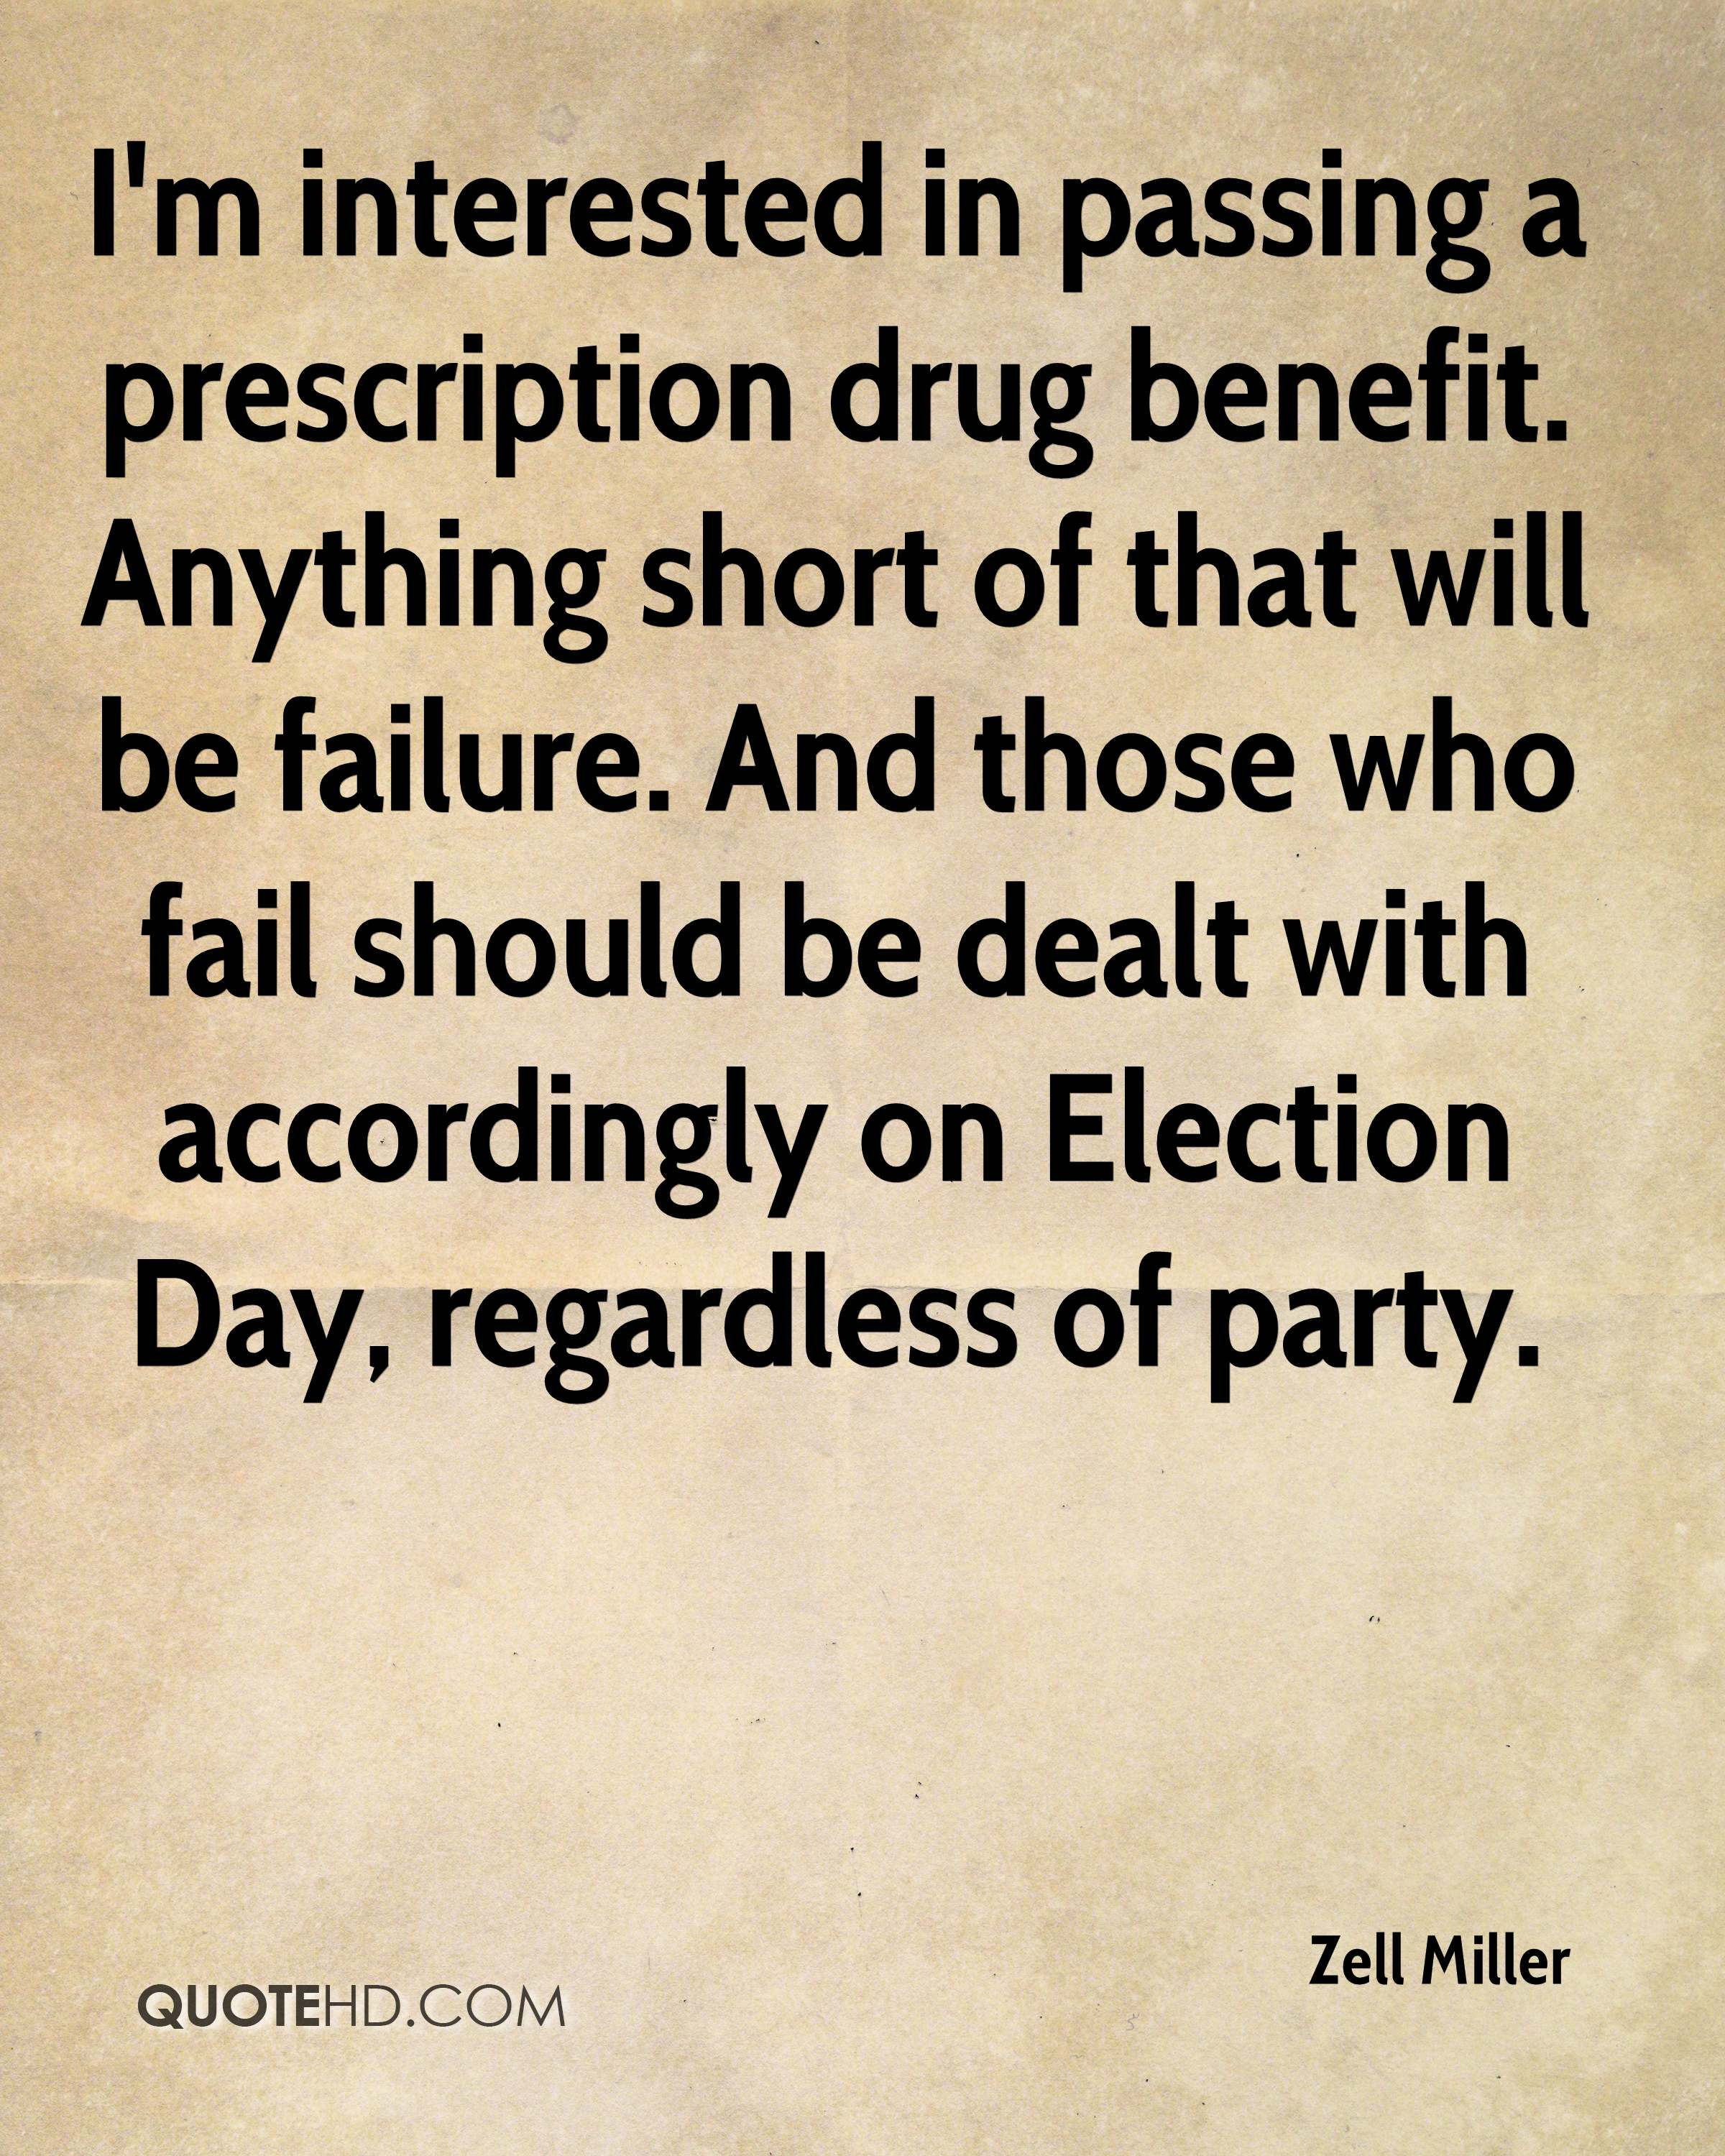 I'm interested in passing a prescription drug benefit. Anything short of that will be failure. And those who fail should be dealt with accordingly on Election Day, regardless of party.